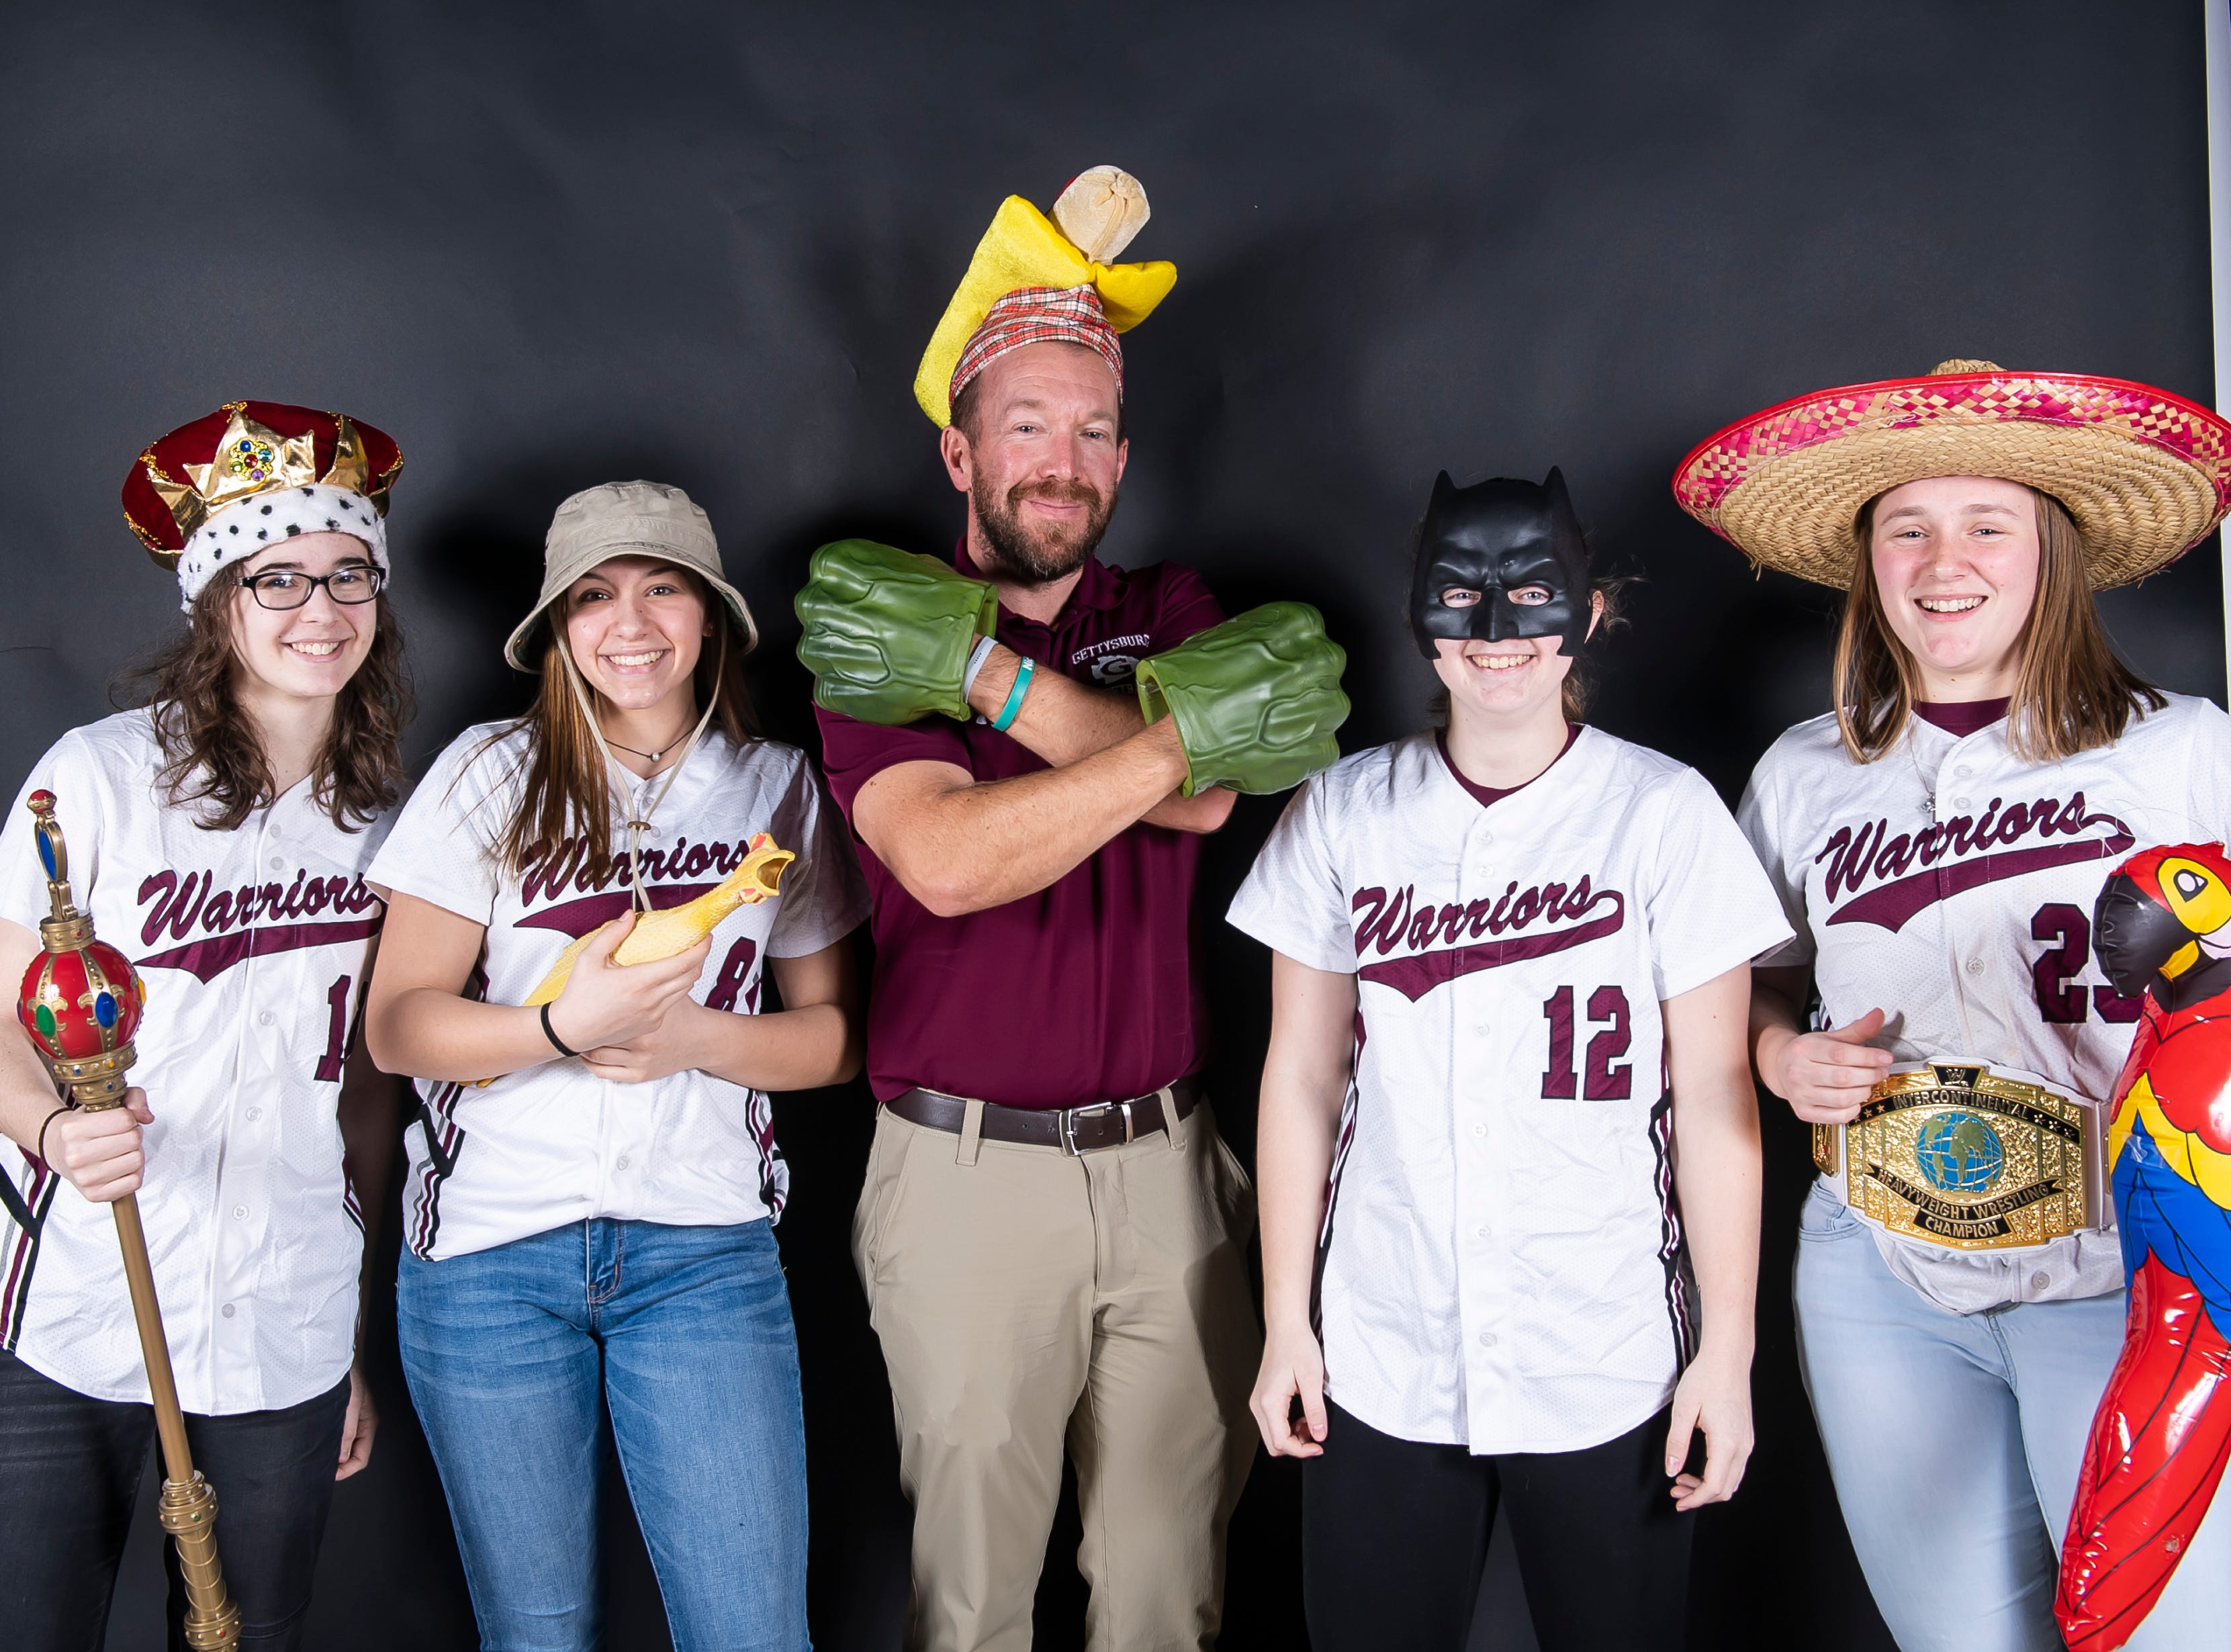 (From left) Gettysburg softball's Hayley Sisney, Kaelyn Blocher, coach Max Laing, Jenna Brase and Rachel Keller strike a pose in the GameTimePA photo booth during spring sports media day in York Sunday, March 10, 2019.